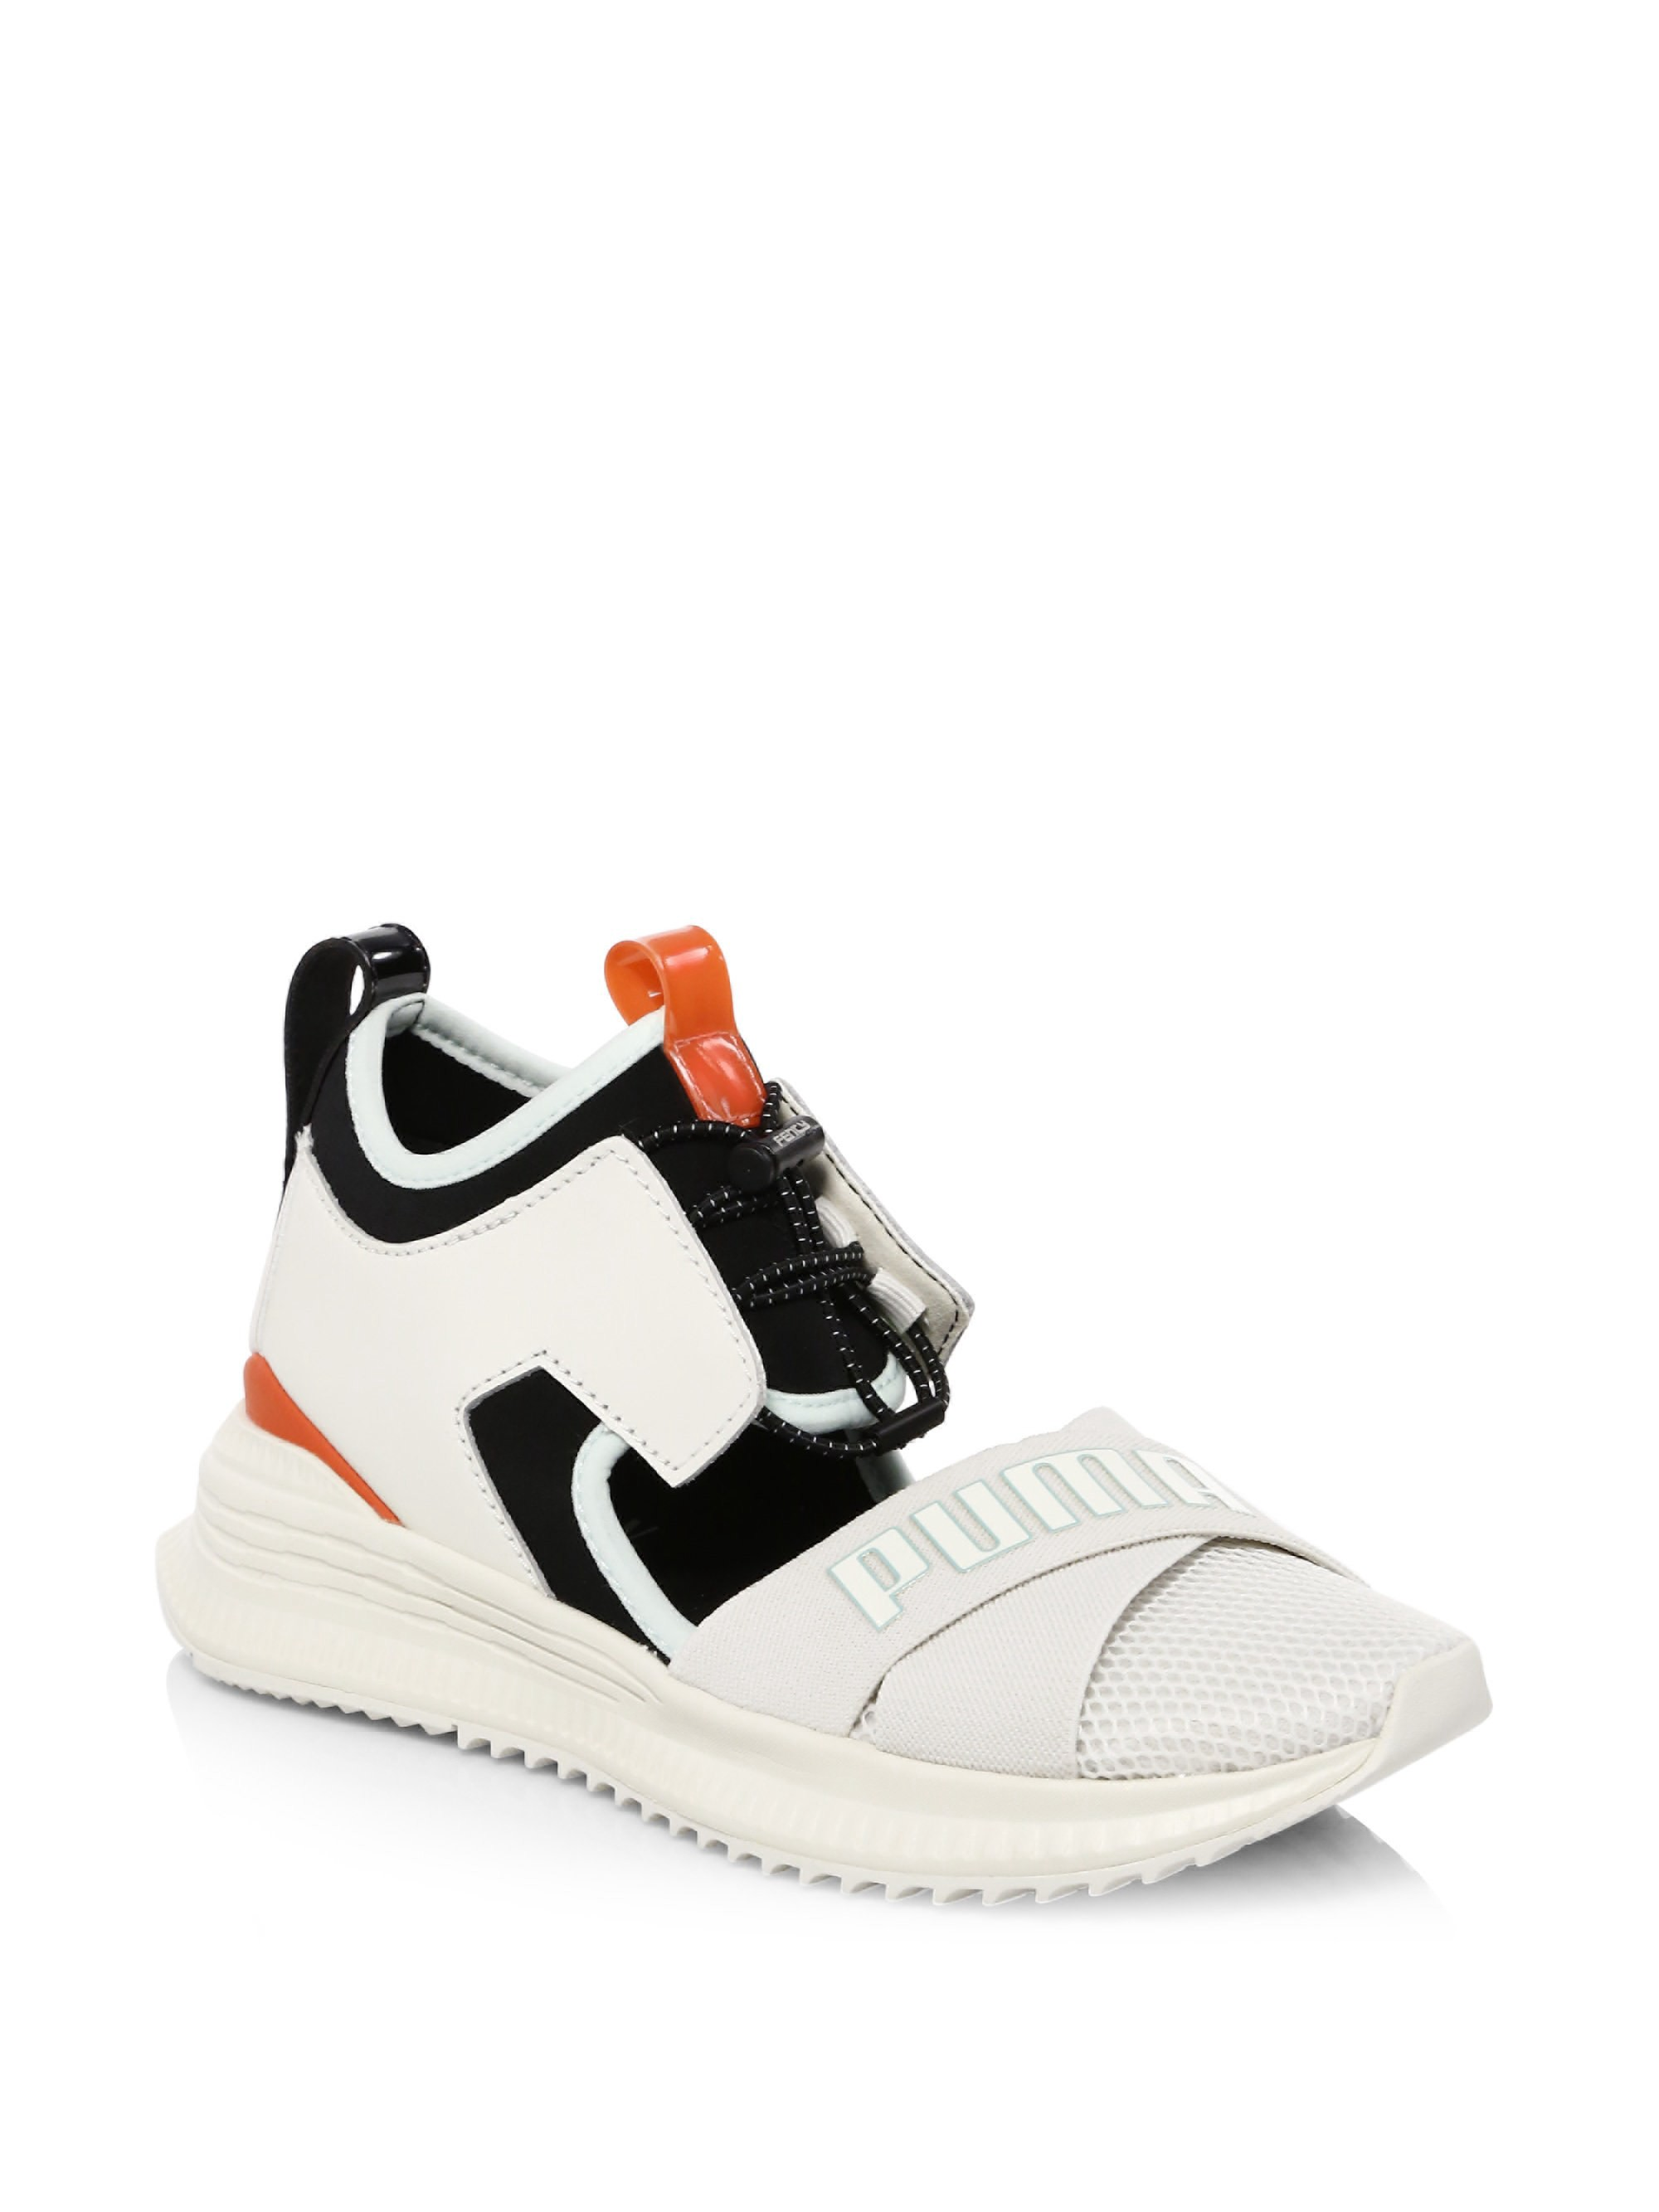 info for d2304 d9059 Puma Fenty Avid Cutout Sneakers - White 9 | Products ...